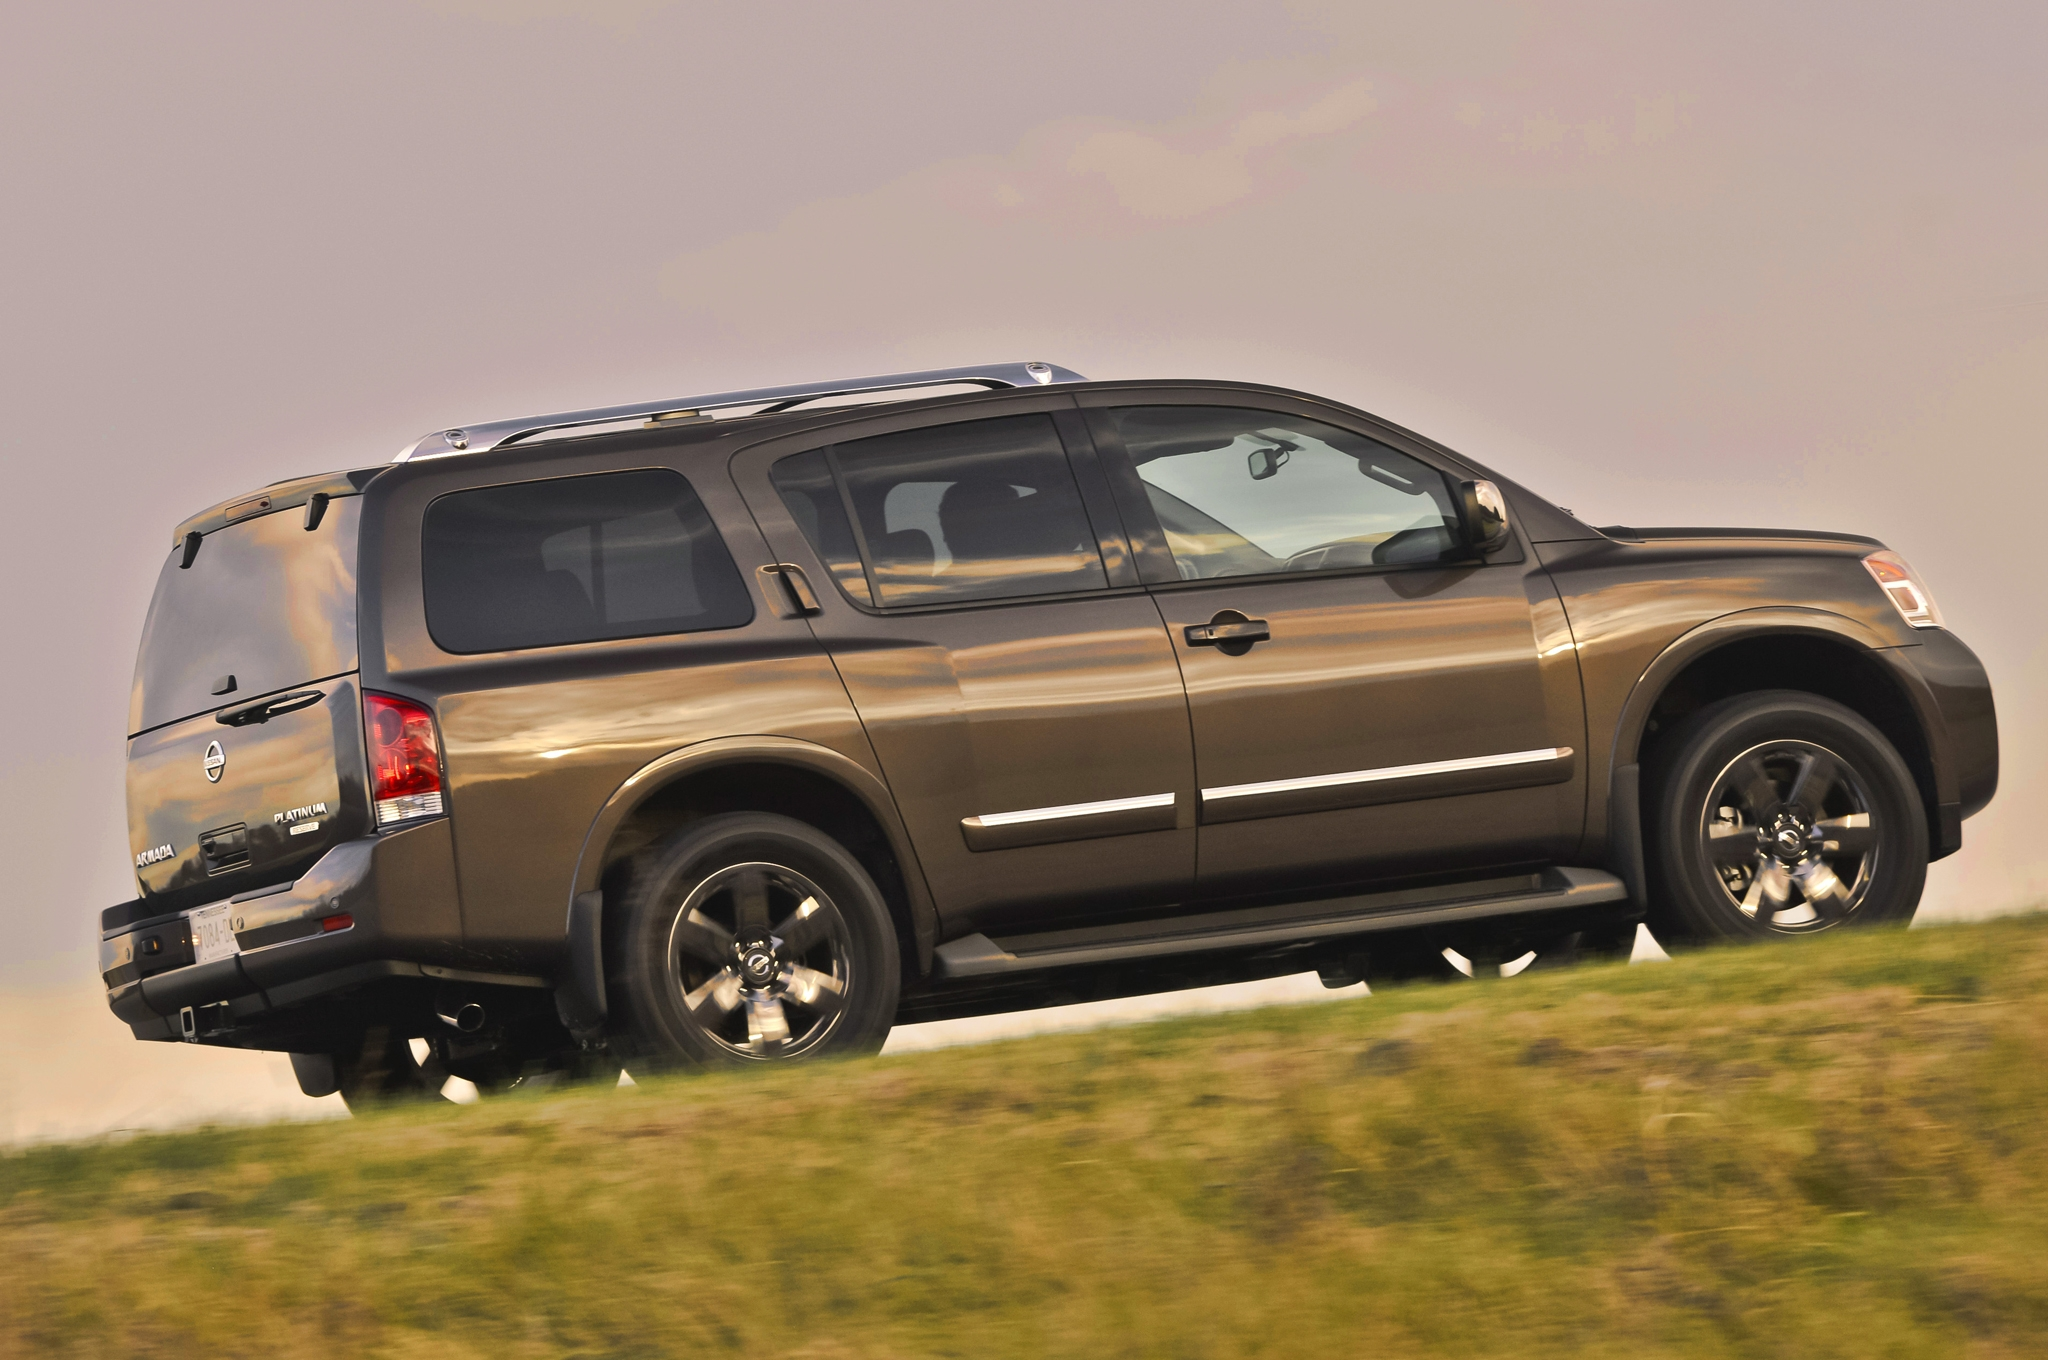 2014 nissan armada information and photos momentcar nissan armada 2014 7 vanachro Choice Image